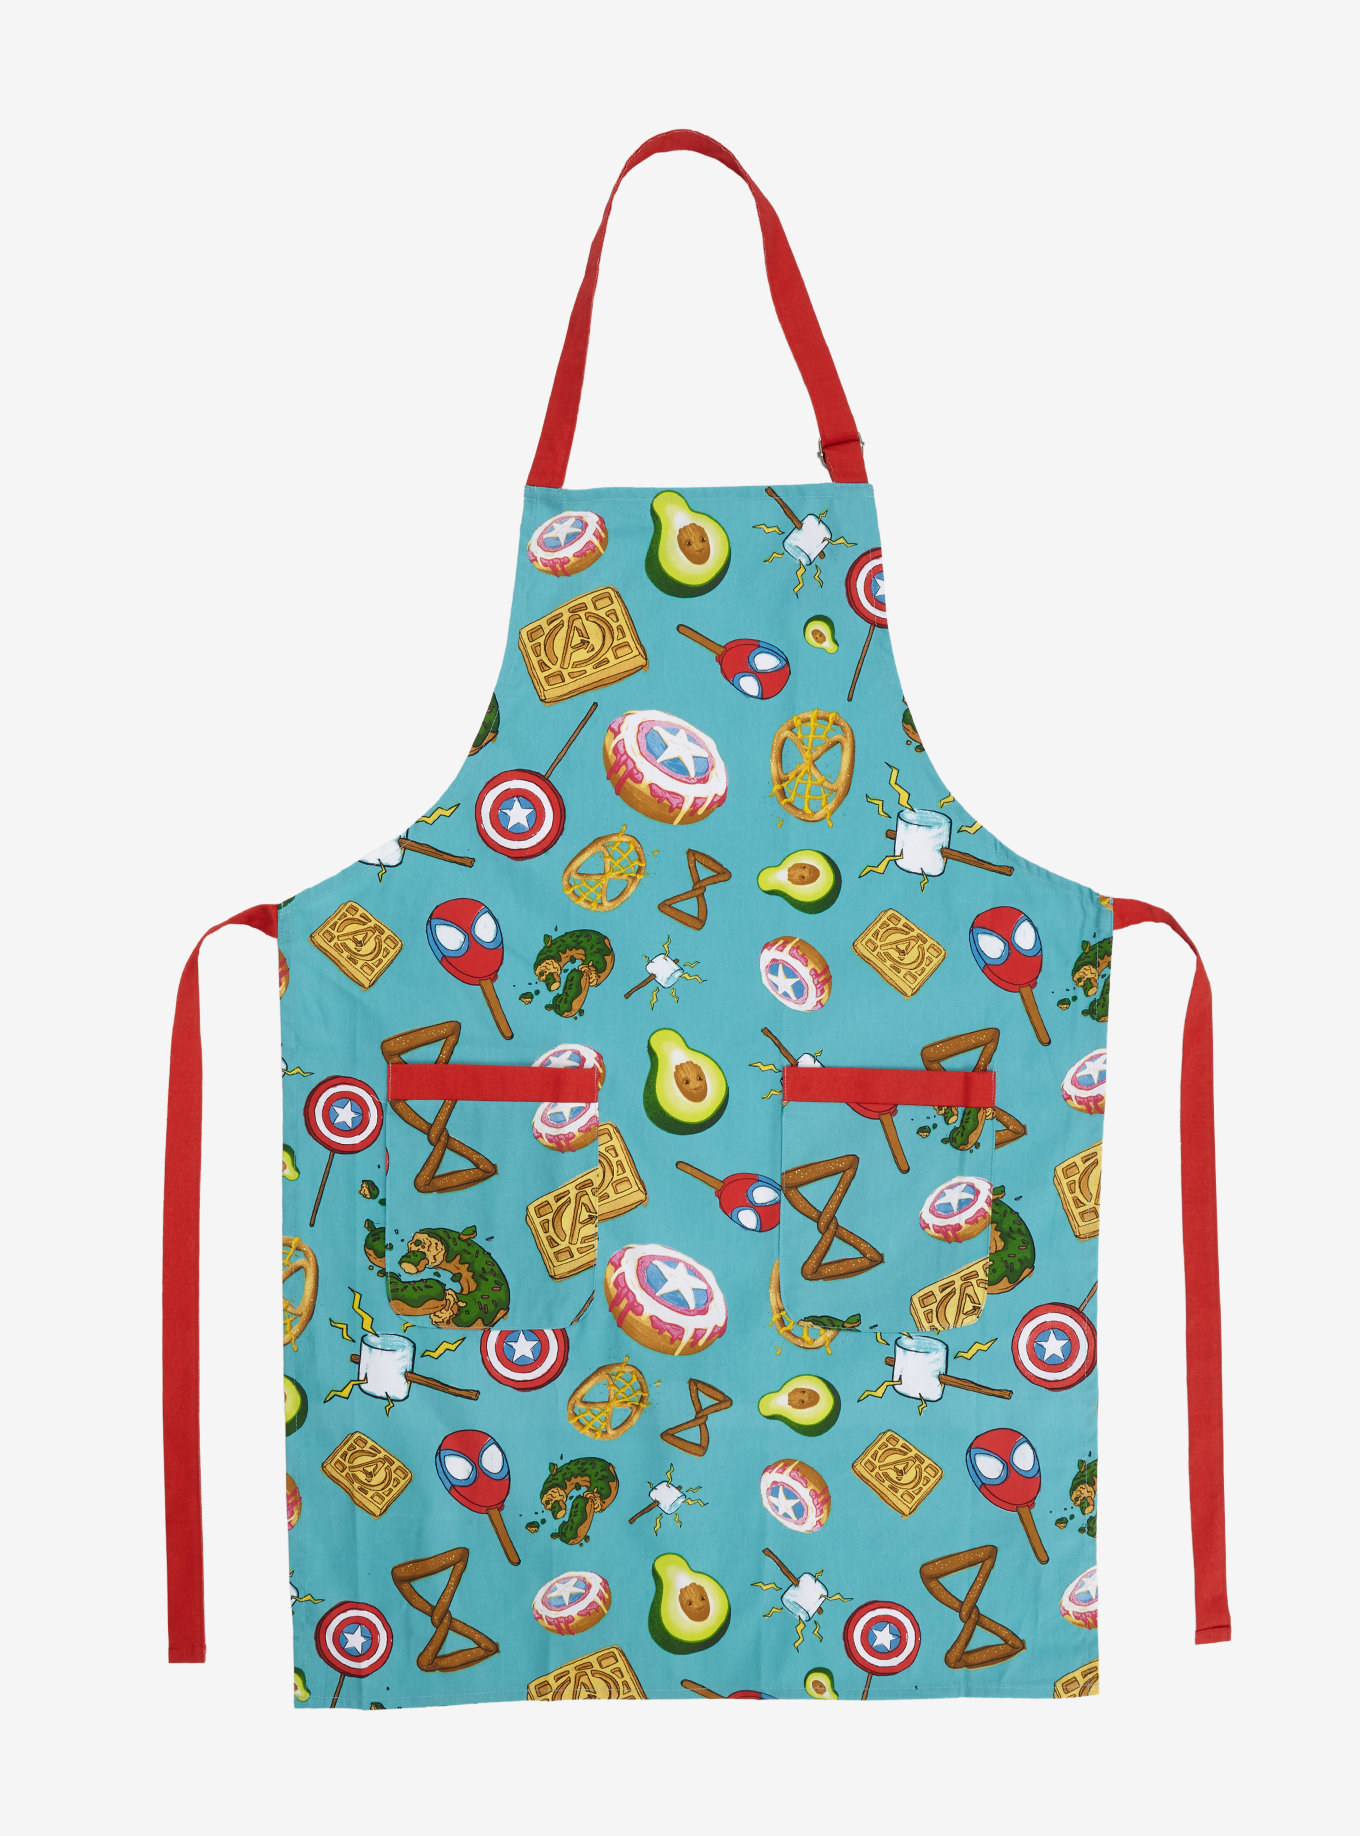 The turquoise apron features Spider-Man, pretzels, marshmallows, Captain America shields, avocados, and Avengers waffles